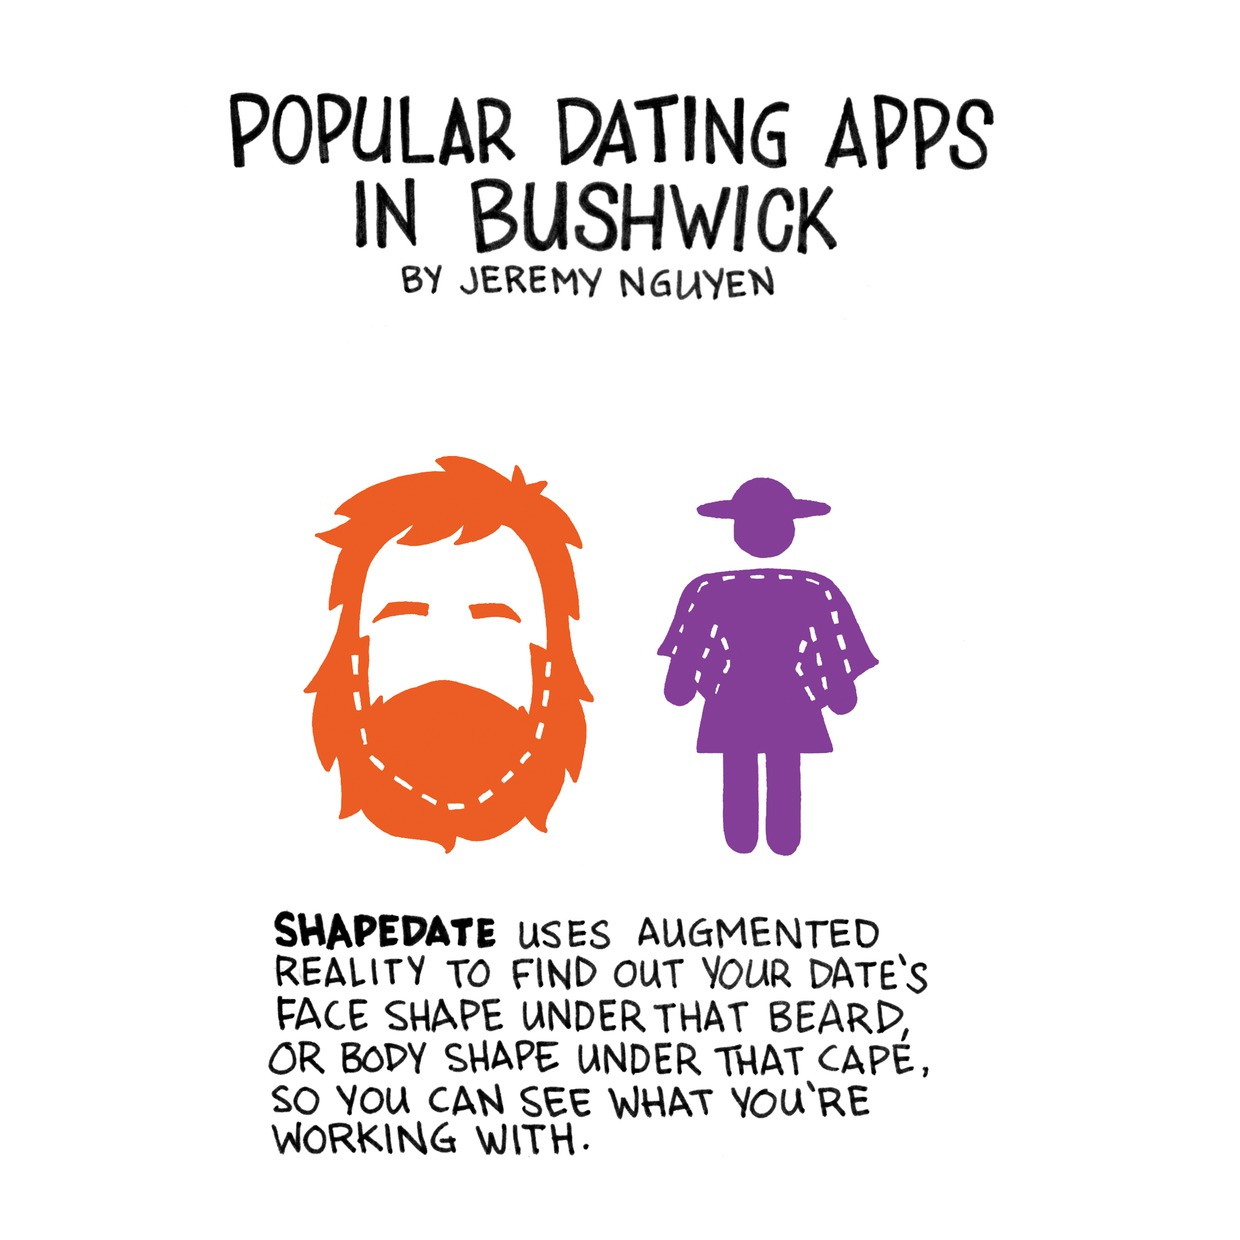 What is a popular dating app